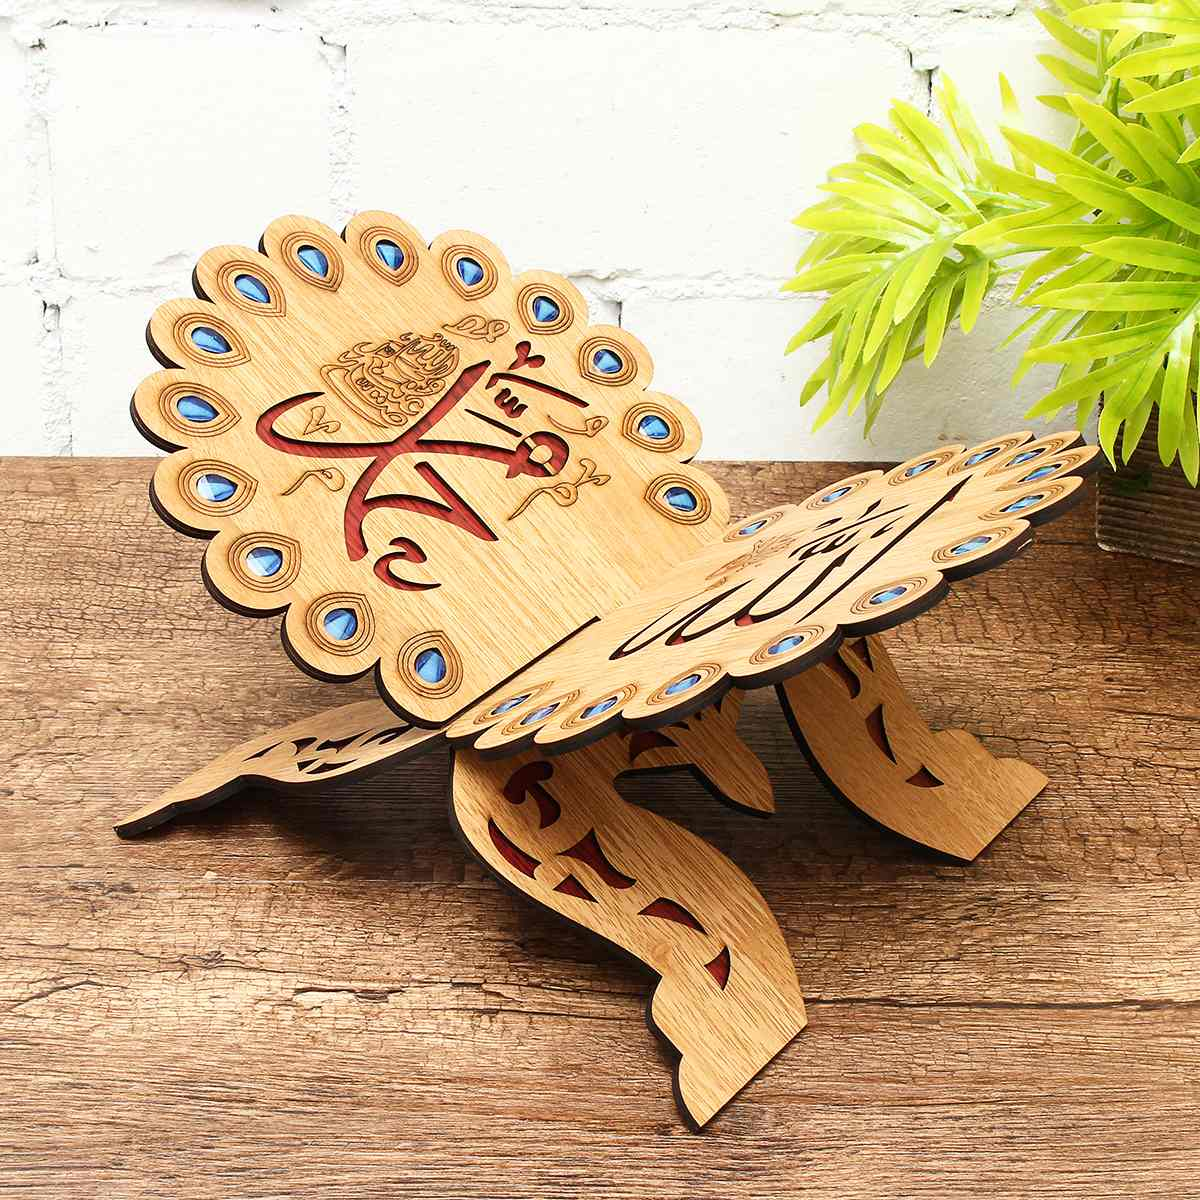 Desk Accessories & Organizer Office & School Supplies 33*23/30*20cm Removable Wooden Book Stand Holder Quran Muslim Ramadan Allah Islamic Gift Handmade Wood Decor Lightweight Sale Price